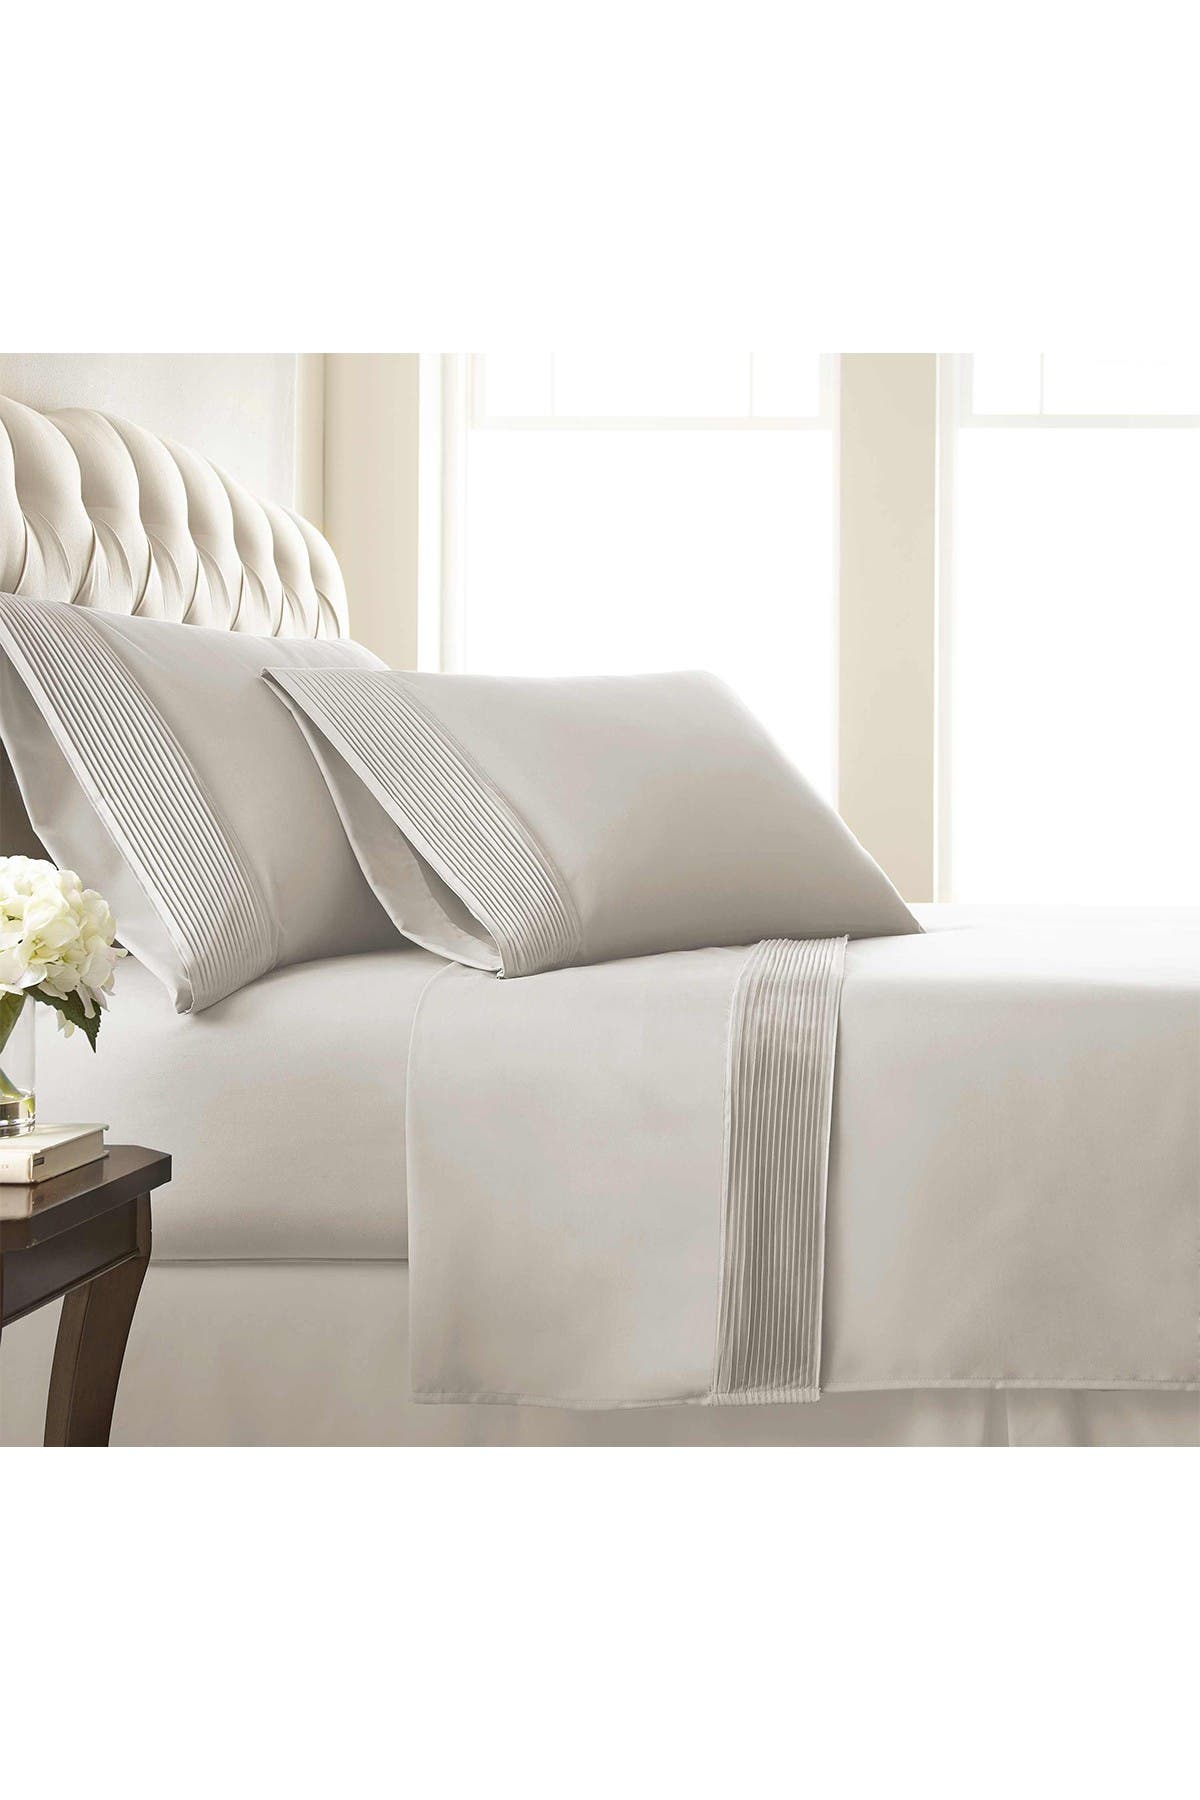 Image of SOUTHSHORE FINE LINENS King Sized Premium Collection Double Brushed Extra Deep Pocket Pleated Sheet Set - Bone